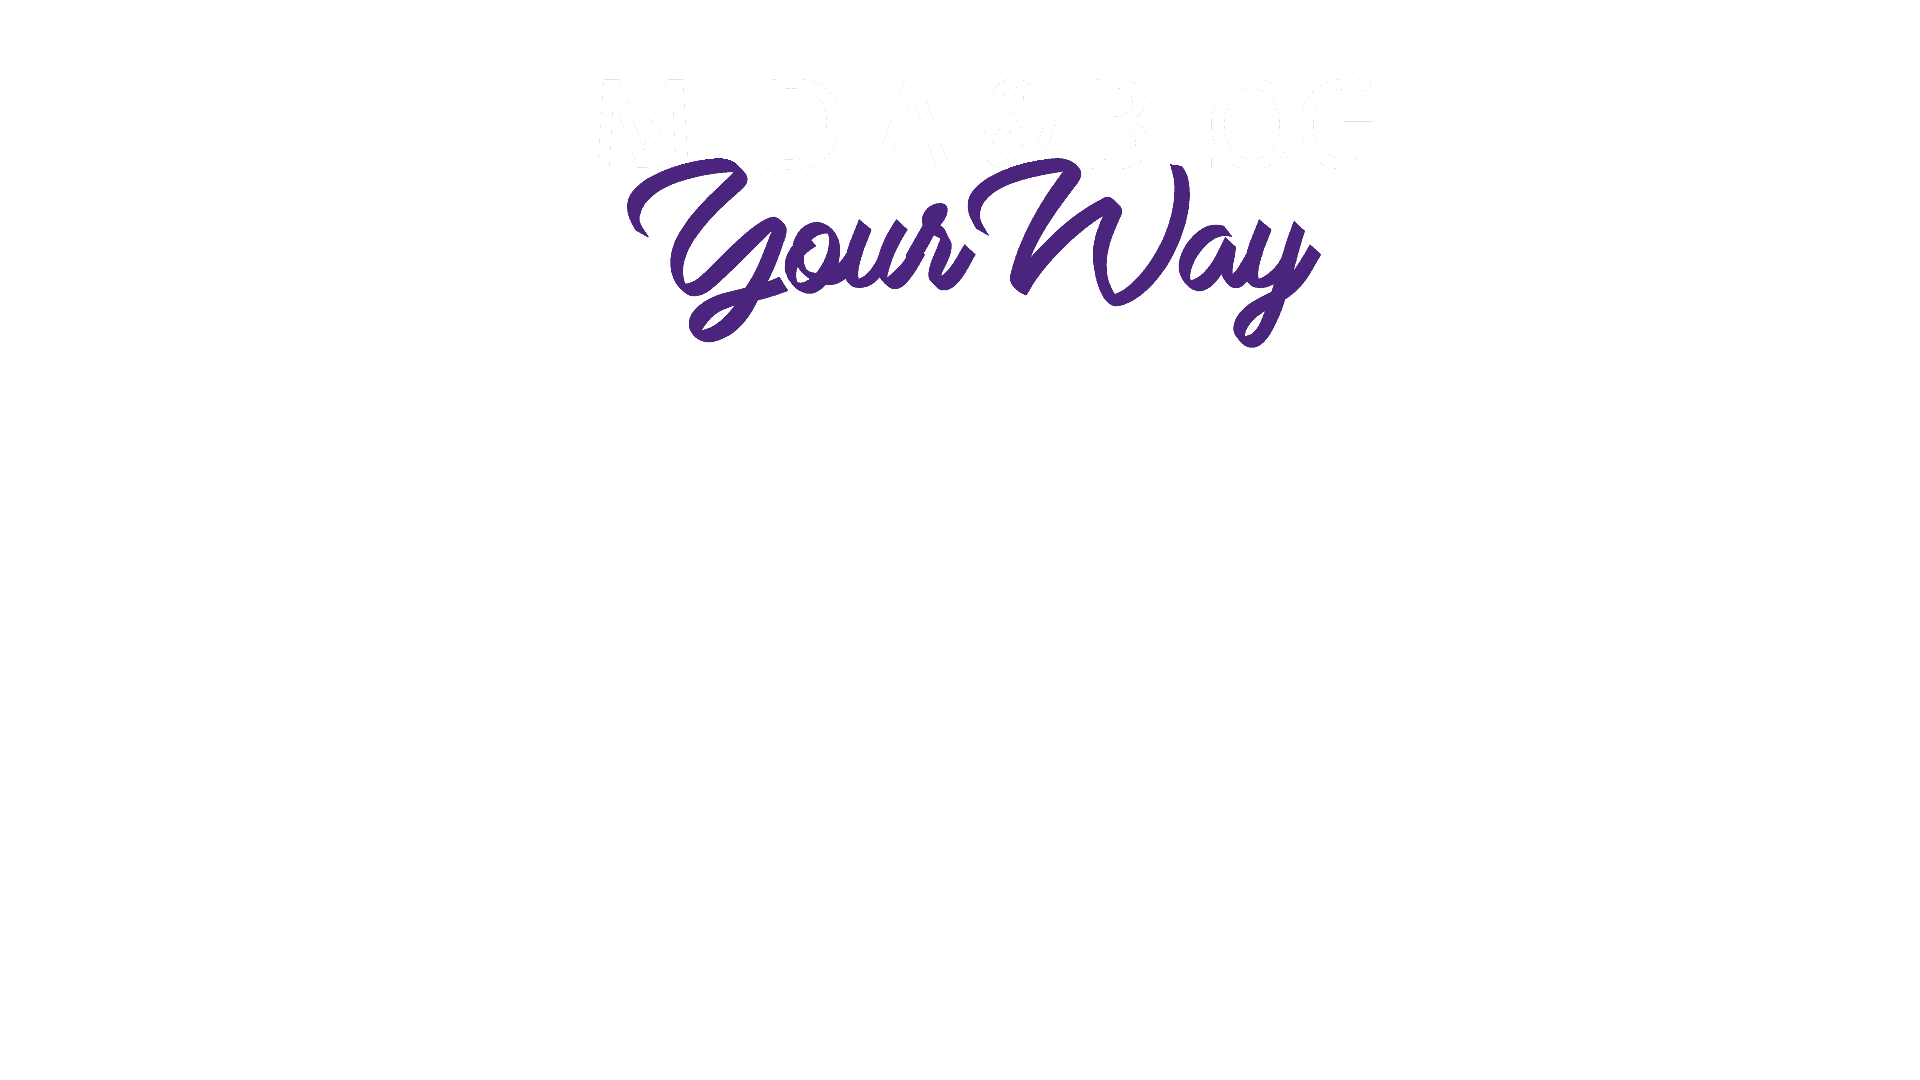 Media and blog logo